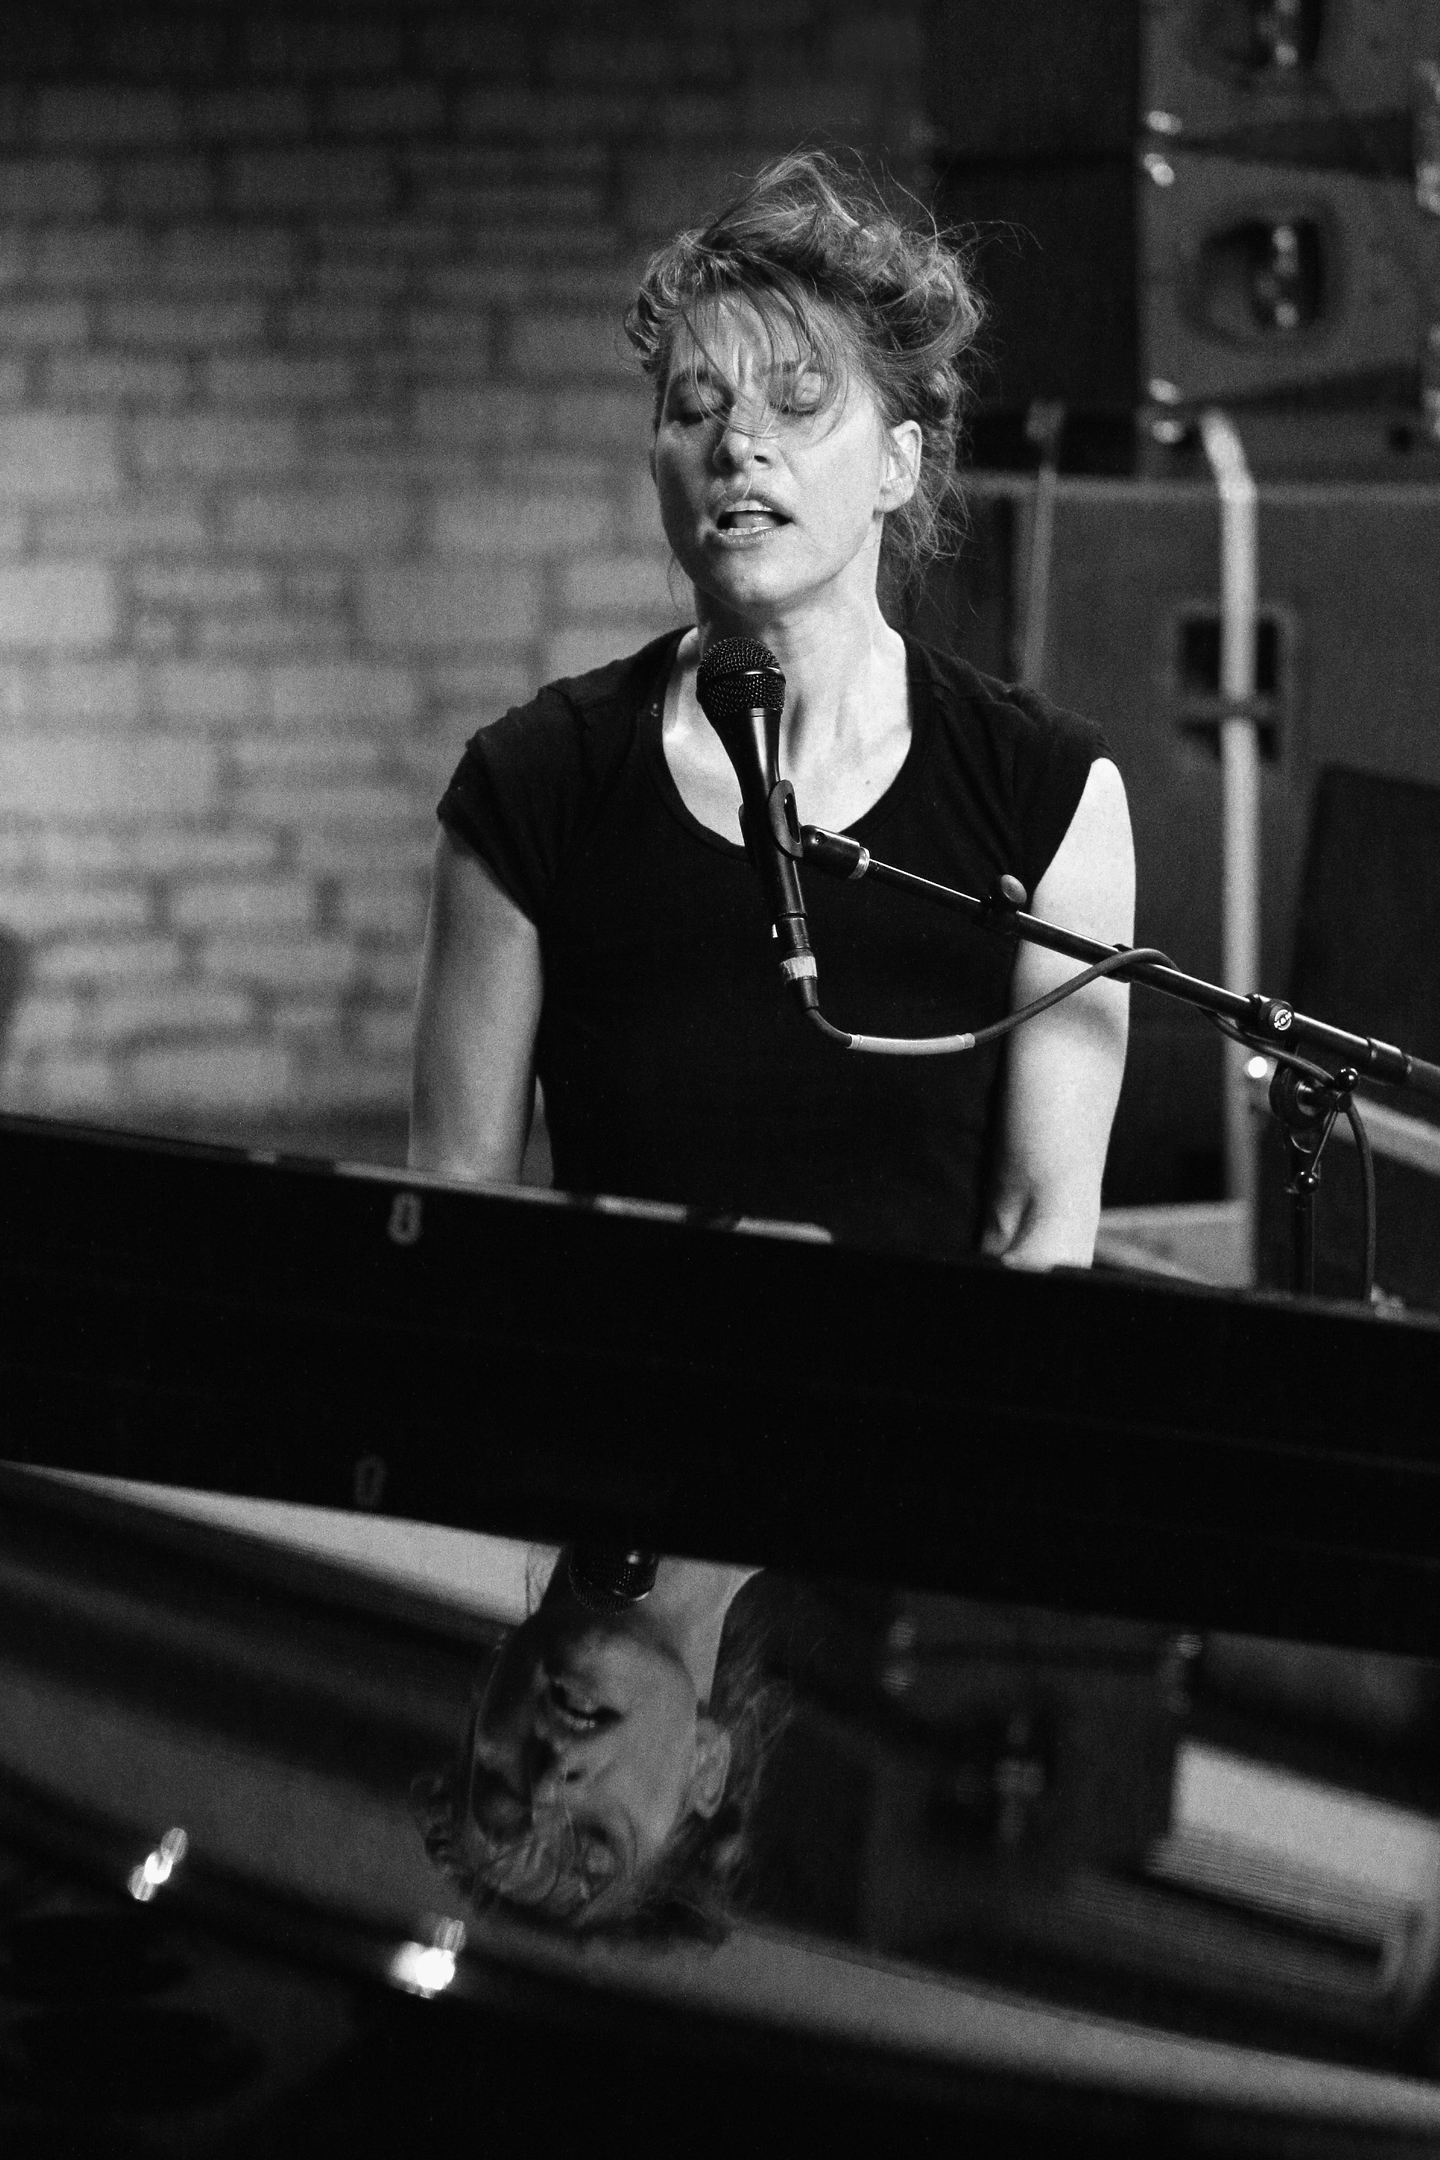 Amanda Palmer performs onstage at NPR Tiny Desk Concert at Central Presbyterian Church.